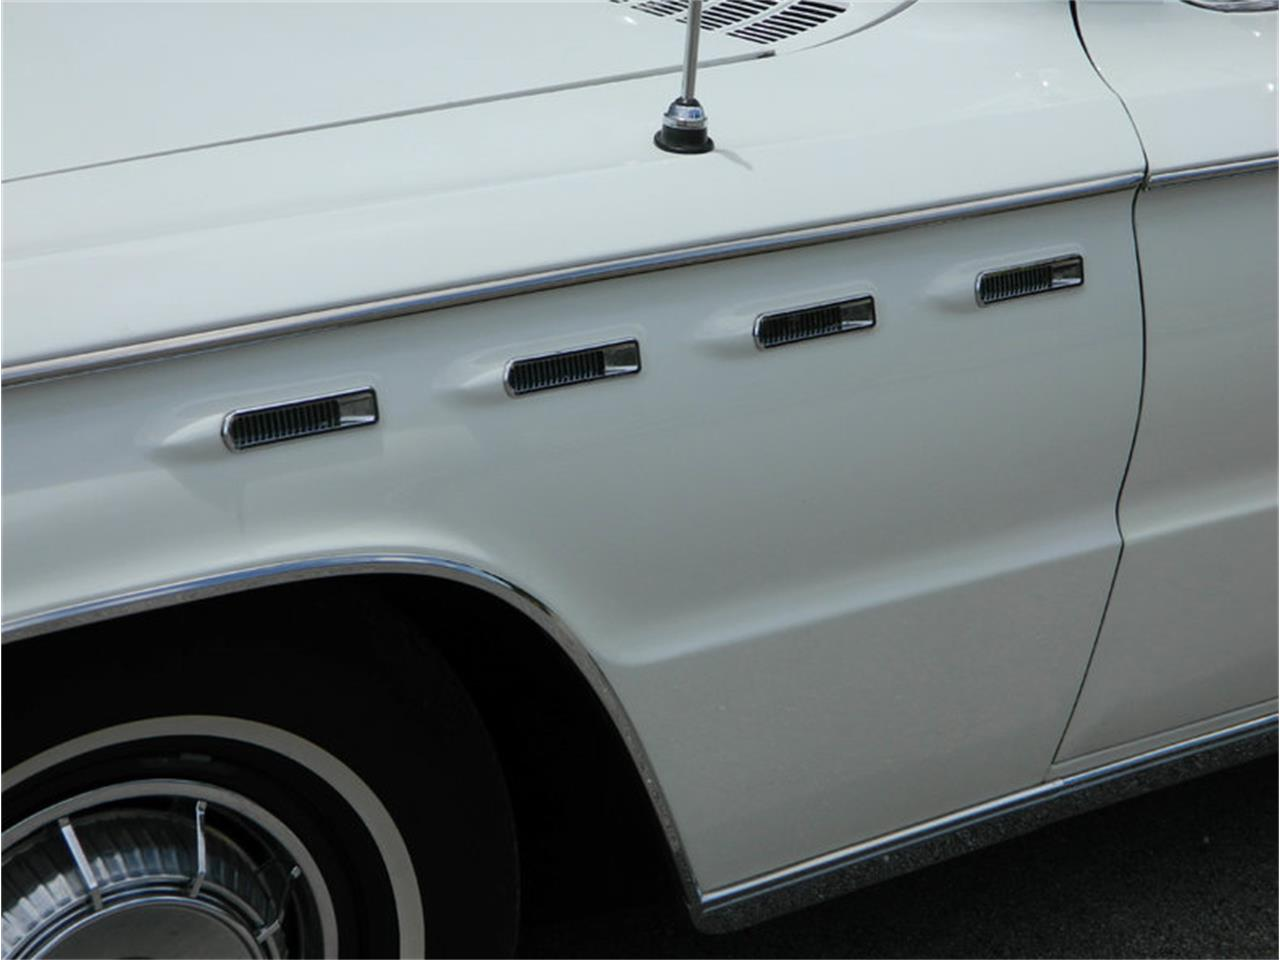 Large Picture of '62 Buick Electra 225 located in Florida - $59,900.00 - M8SN